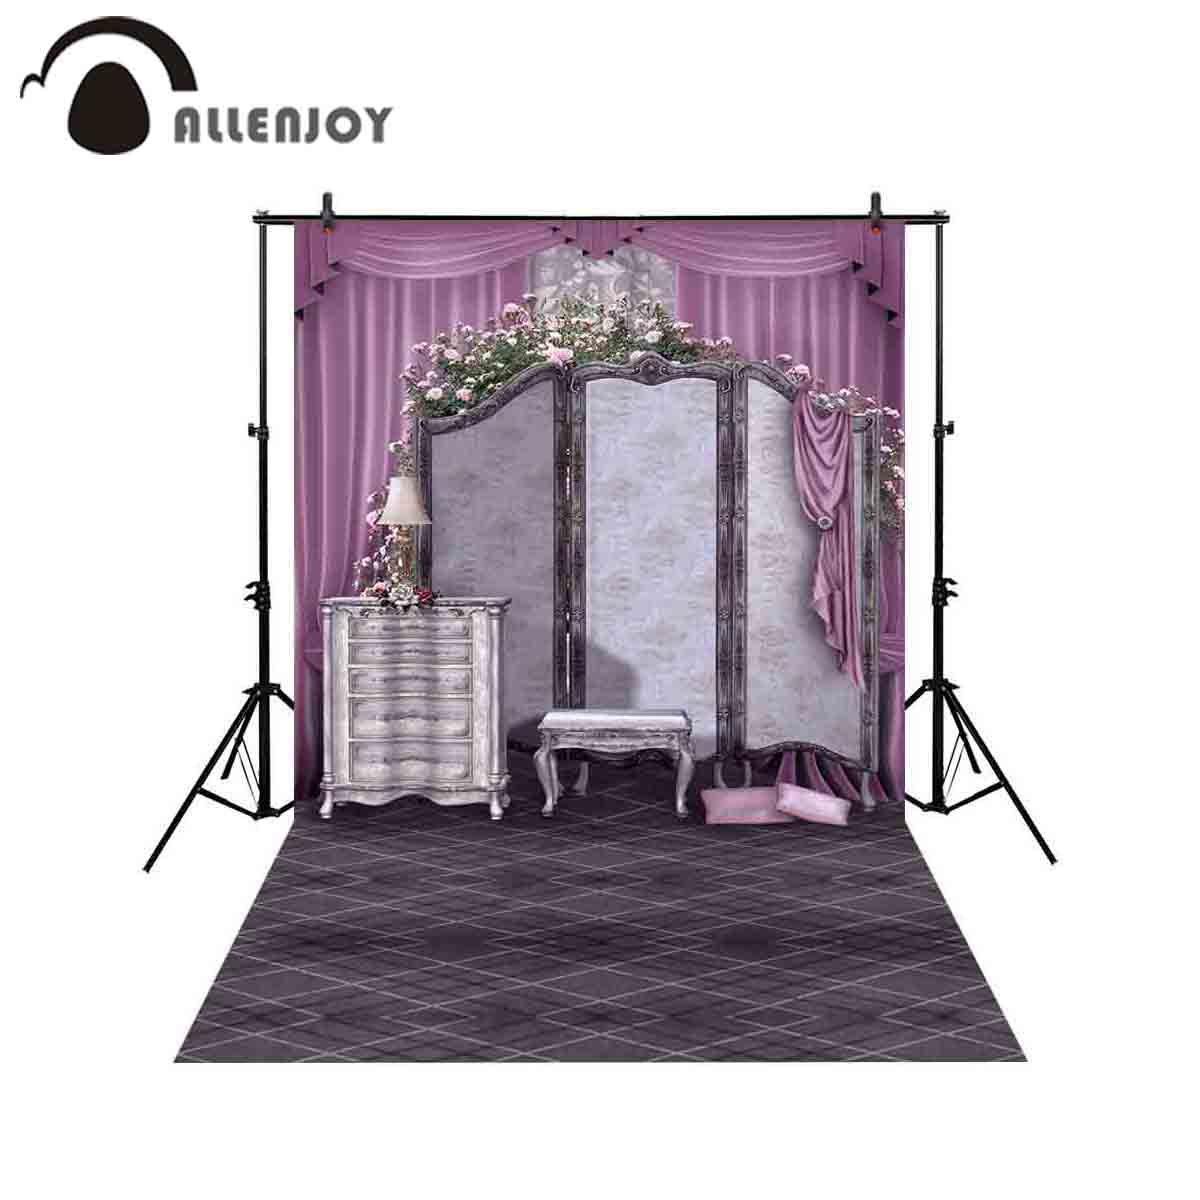 Allenjoy Professional Photography Background Clothes Hanger Jewelry Cabinet Pink Curtain Retro Table Lamp Backdrop Photobooth Camera & Photo Background